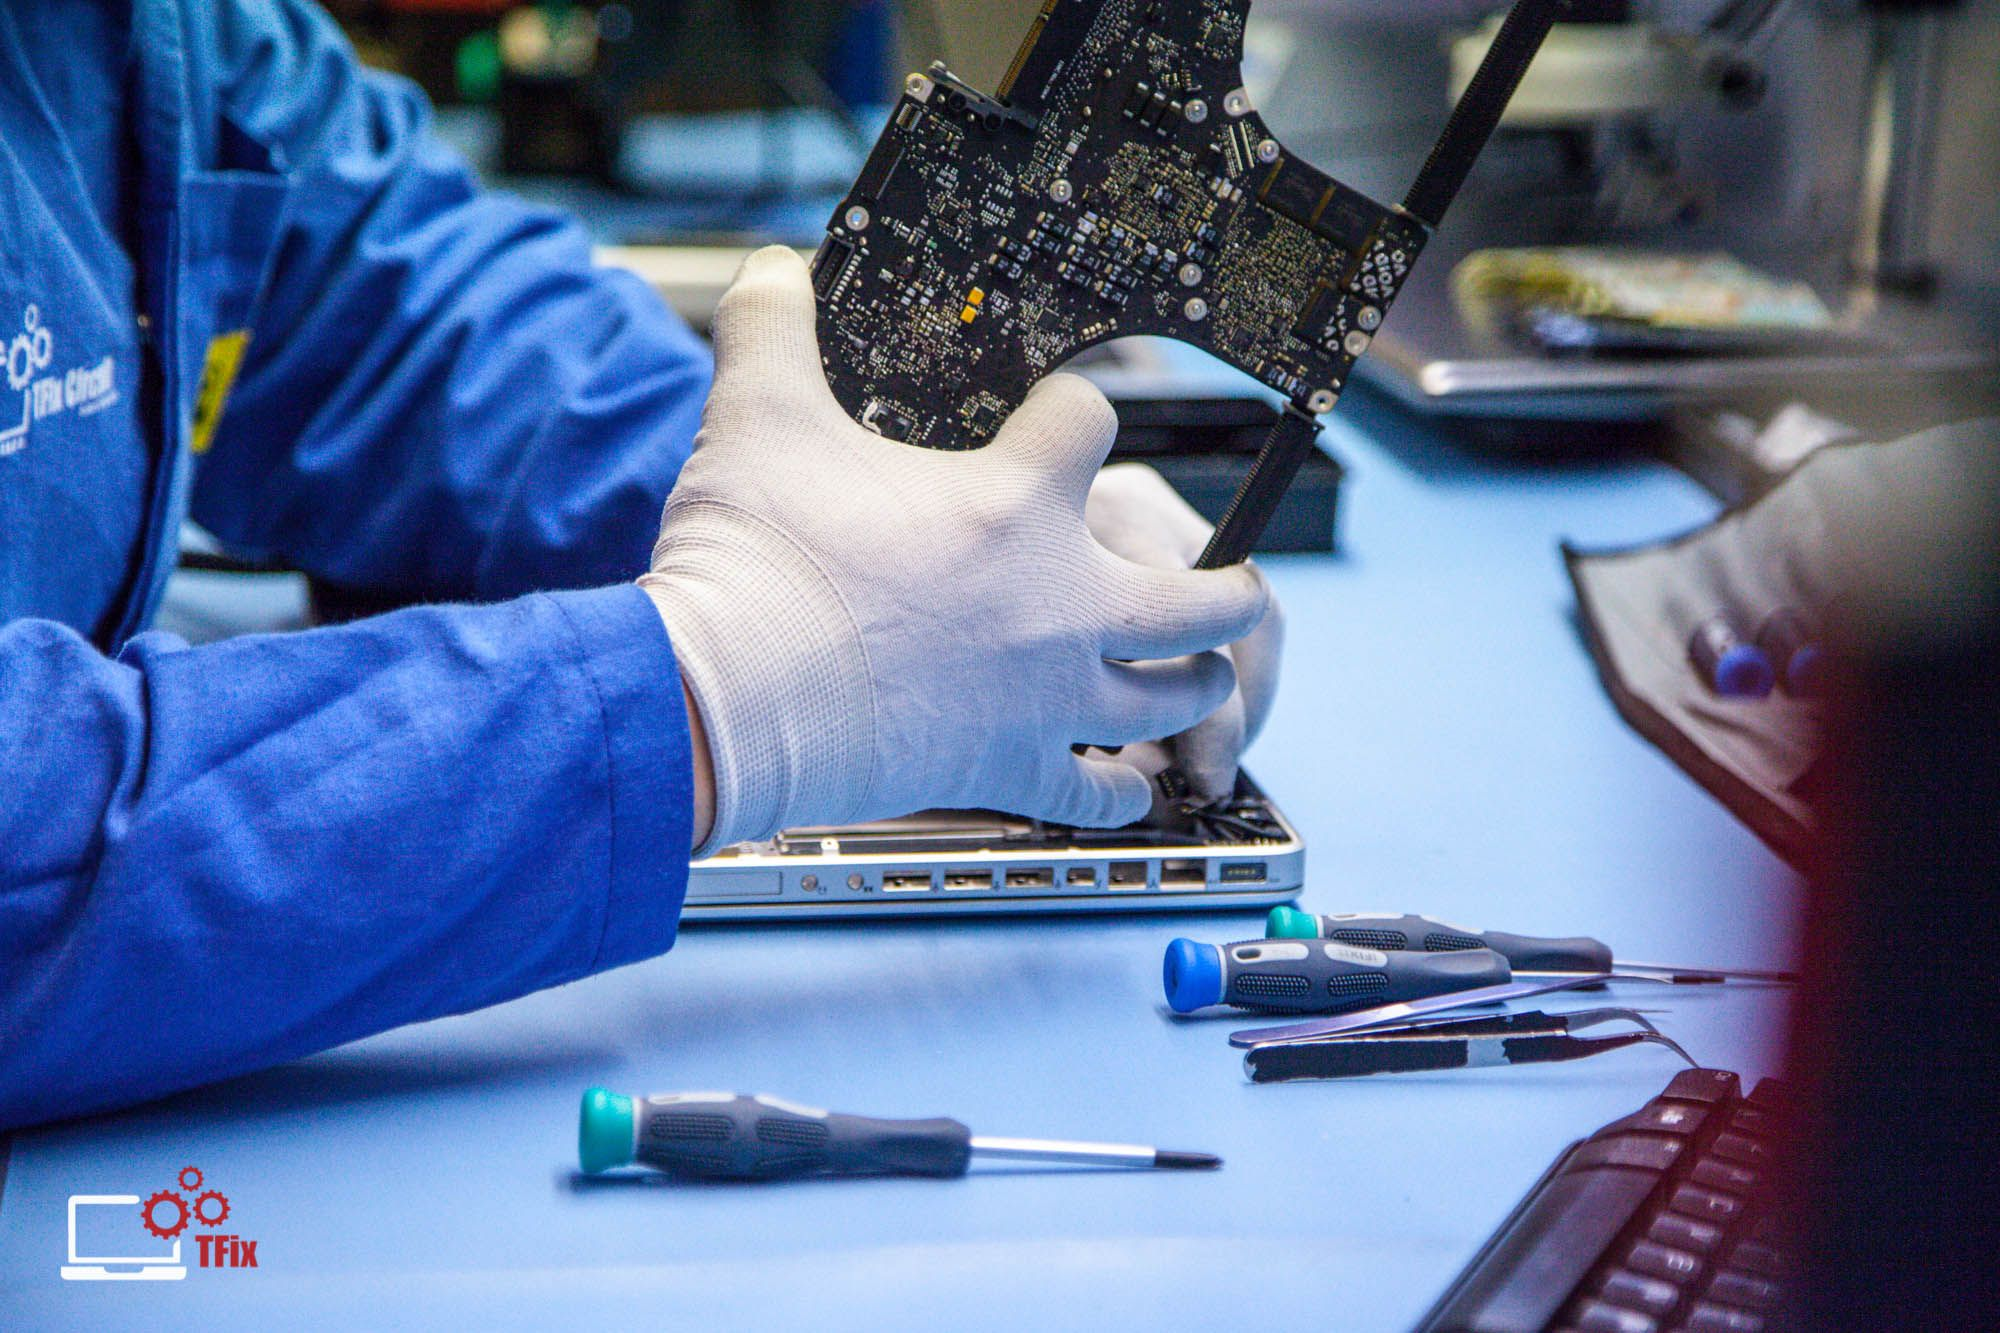 It is vital that any #macbook that has been liquid damaged undergoes #professional cleaning as soon as possible. Corrosion causes failed connections on logic board. Our #engineers can identify, repair and replace #PCB tracks and faulty #components. Visit www.tfix.co.uk for more information.